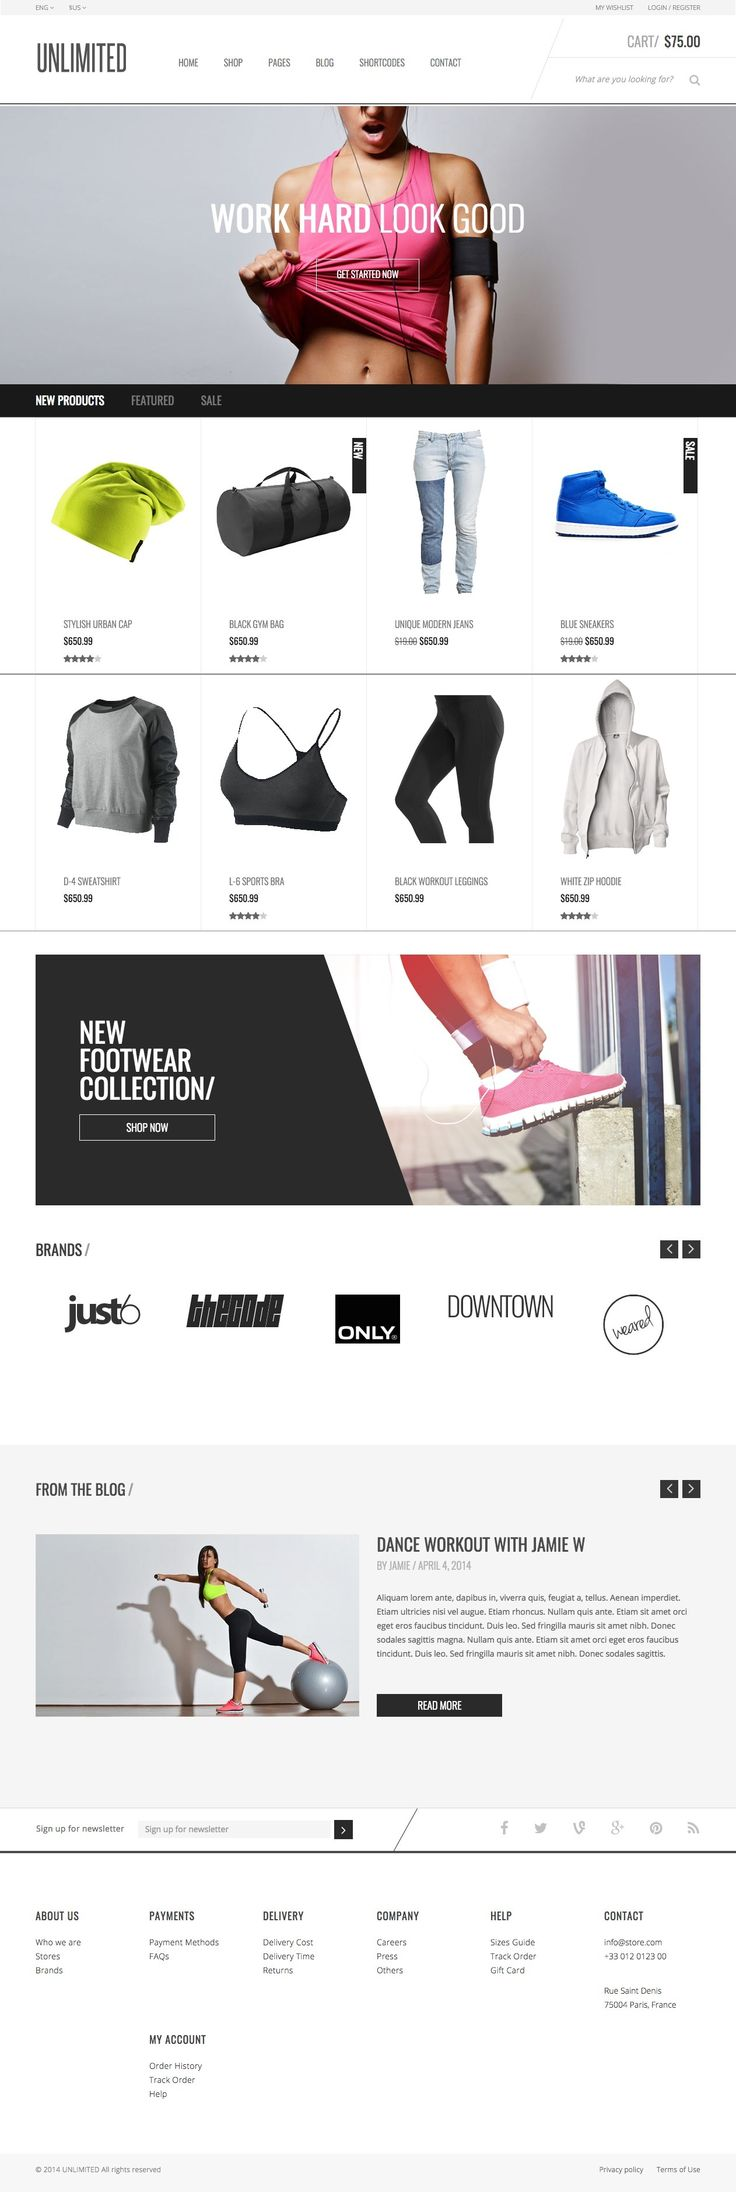 Unlimited Sports Wear & Accessories Store Template #sports wear store #$17